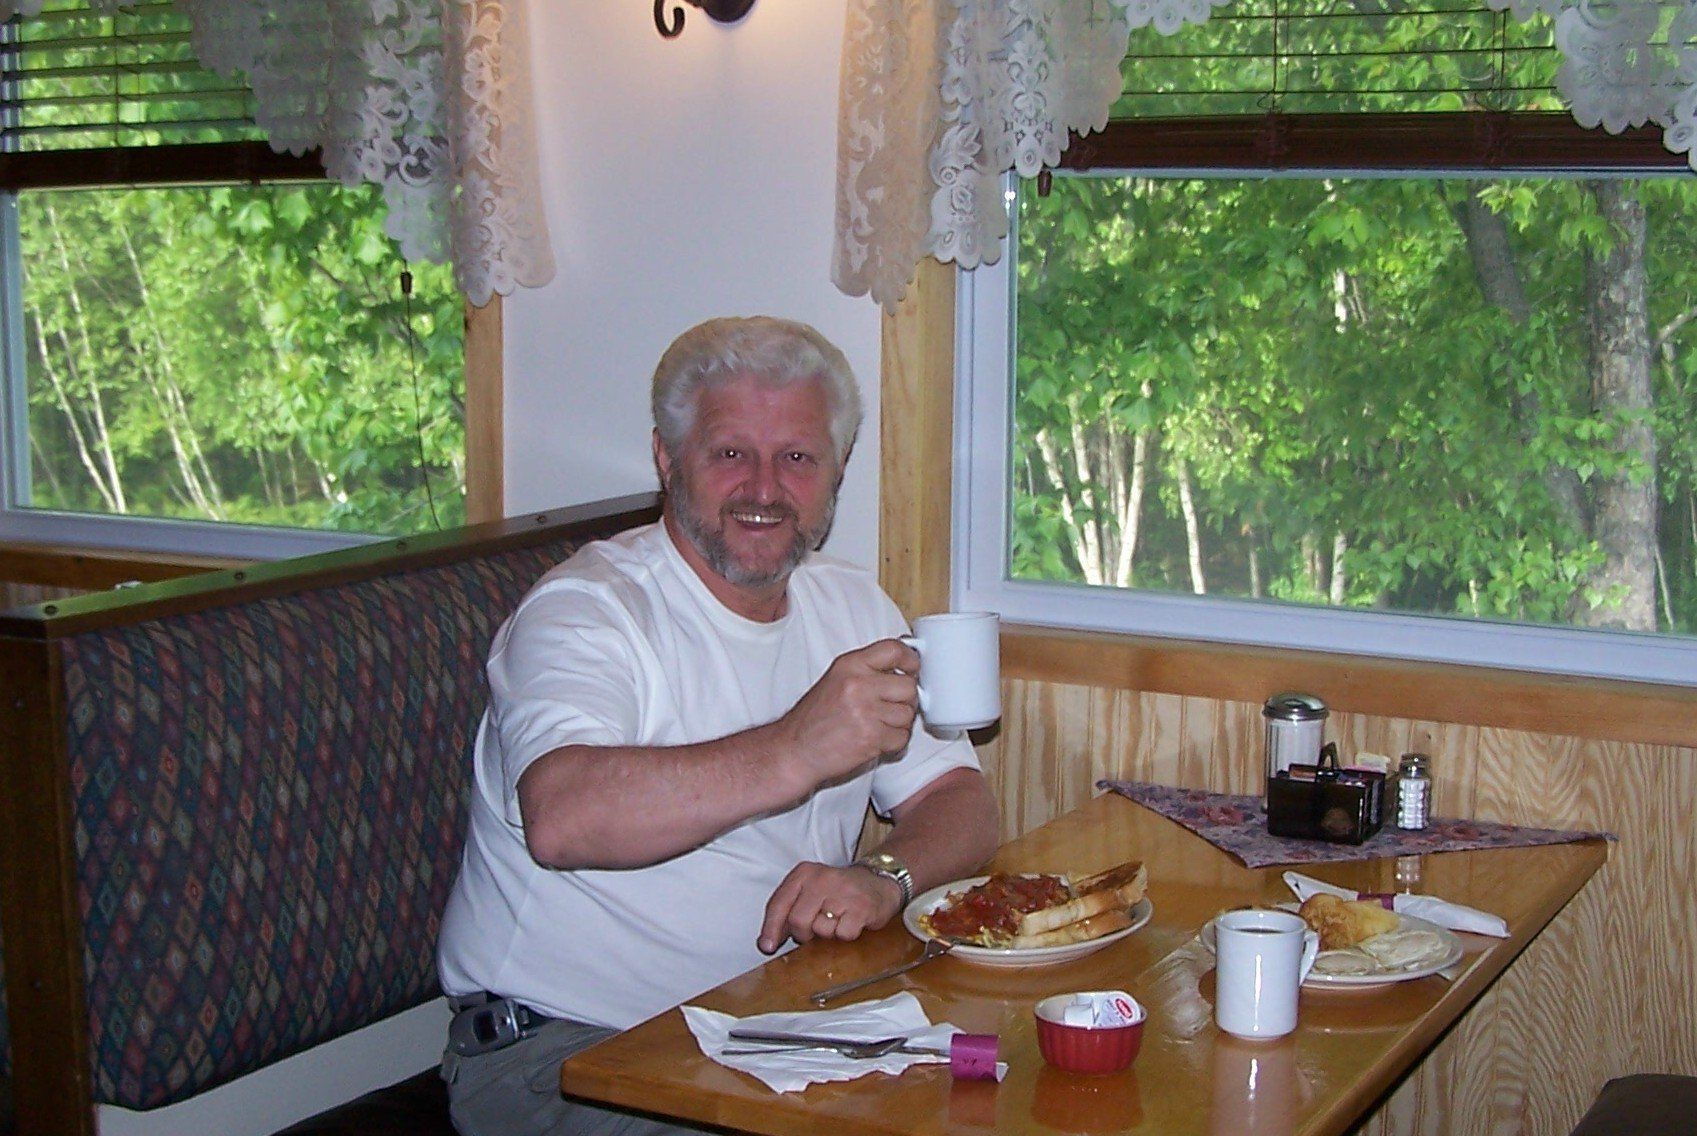 """Tim, on of the owners, says' """"Come on in and join us for breakfast!"""""""